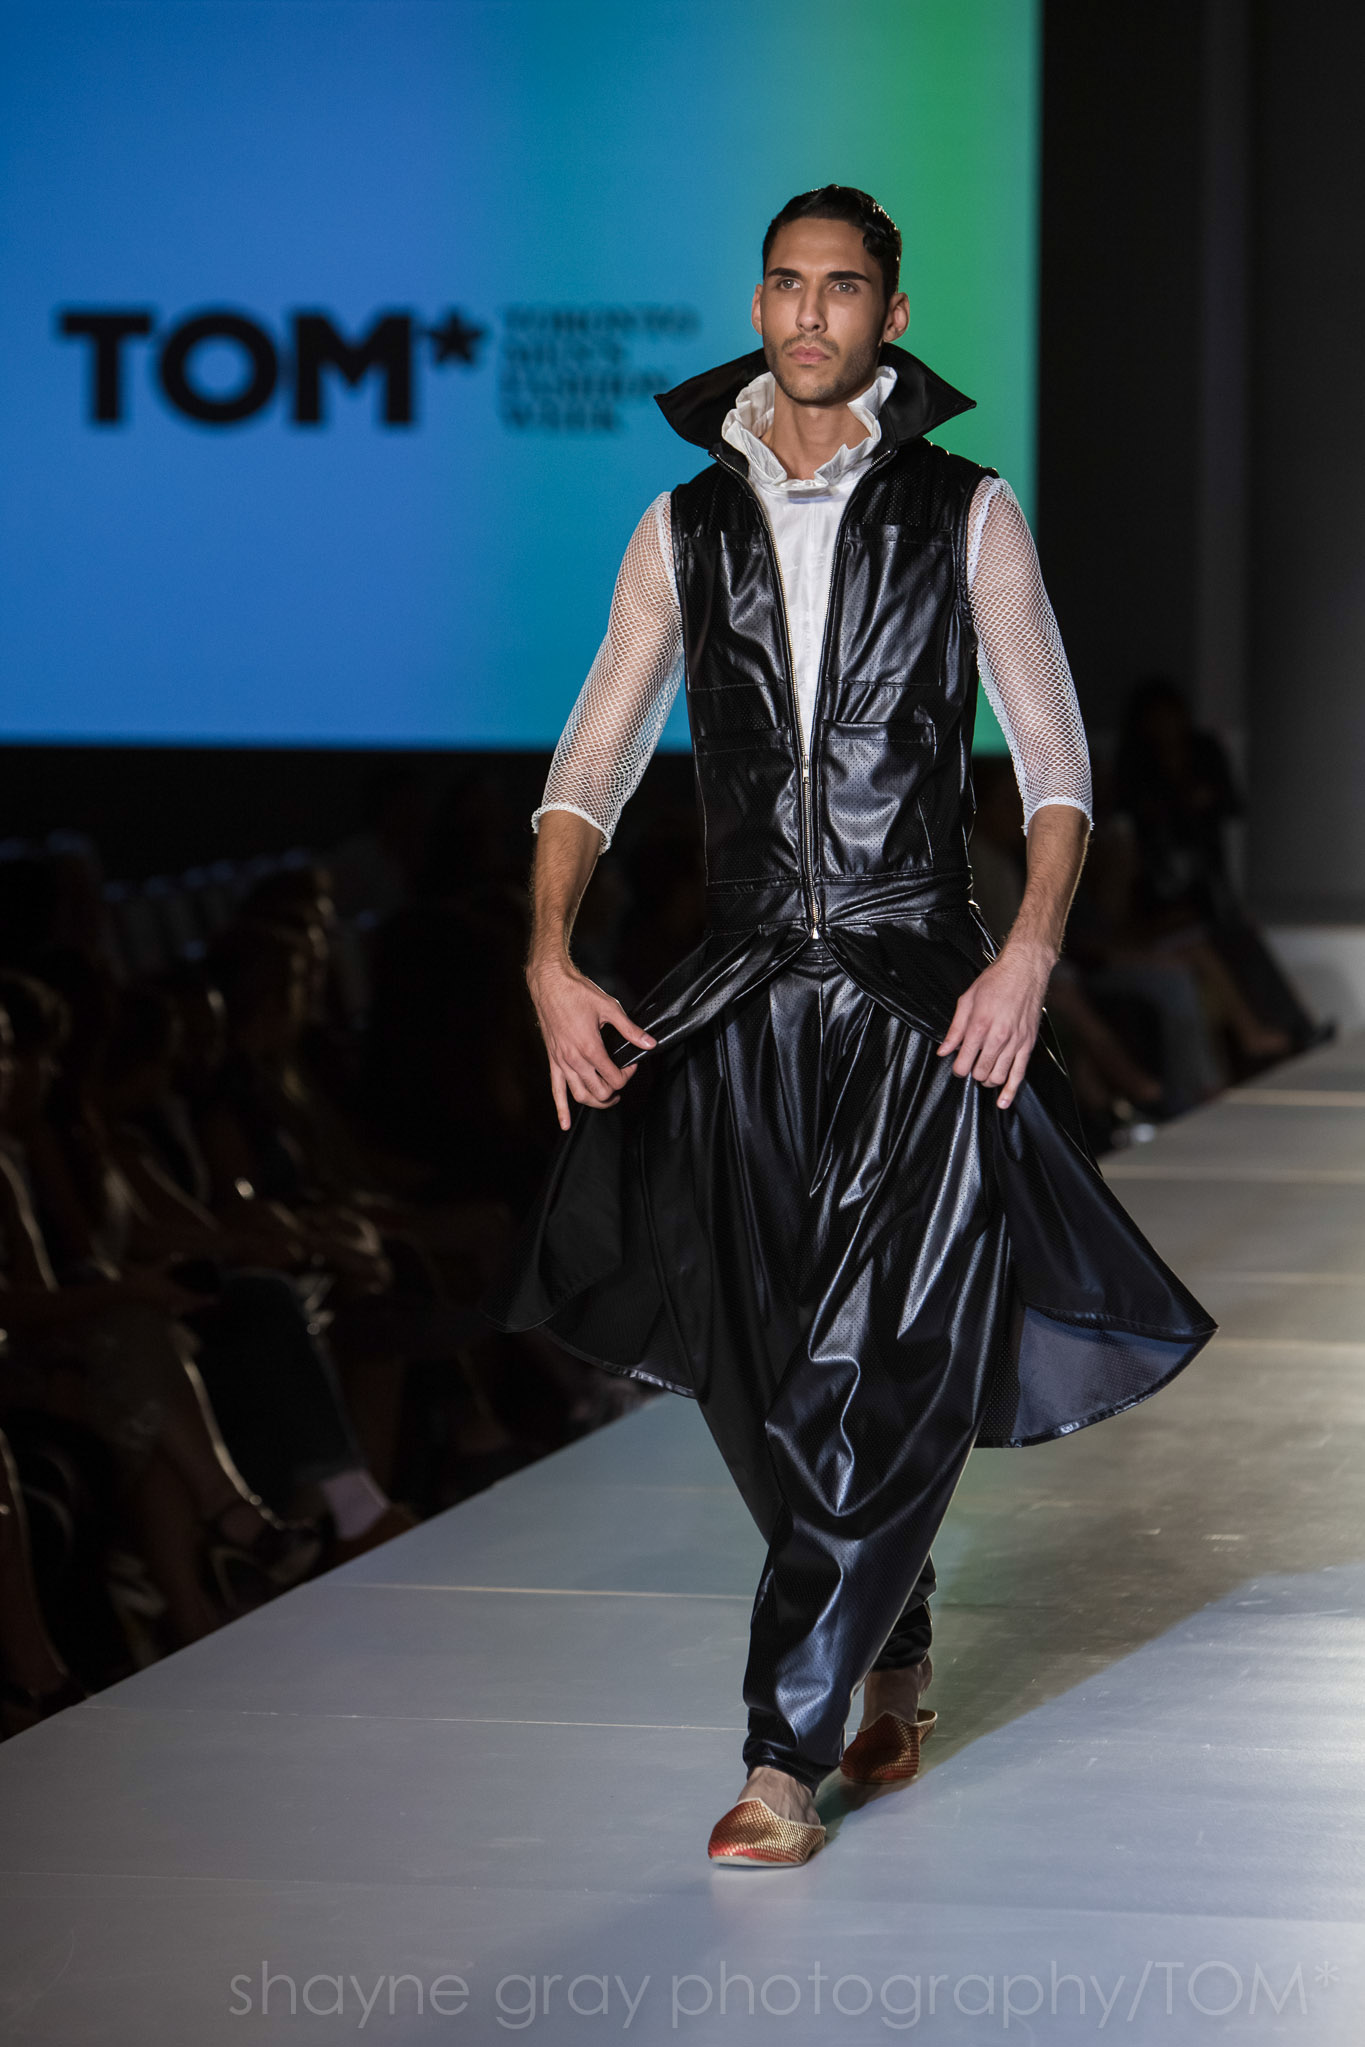 Shayne-Gray-Toronto-men's-fashion_week-TOM-l'uomo-strano-8645.jpg